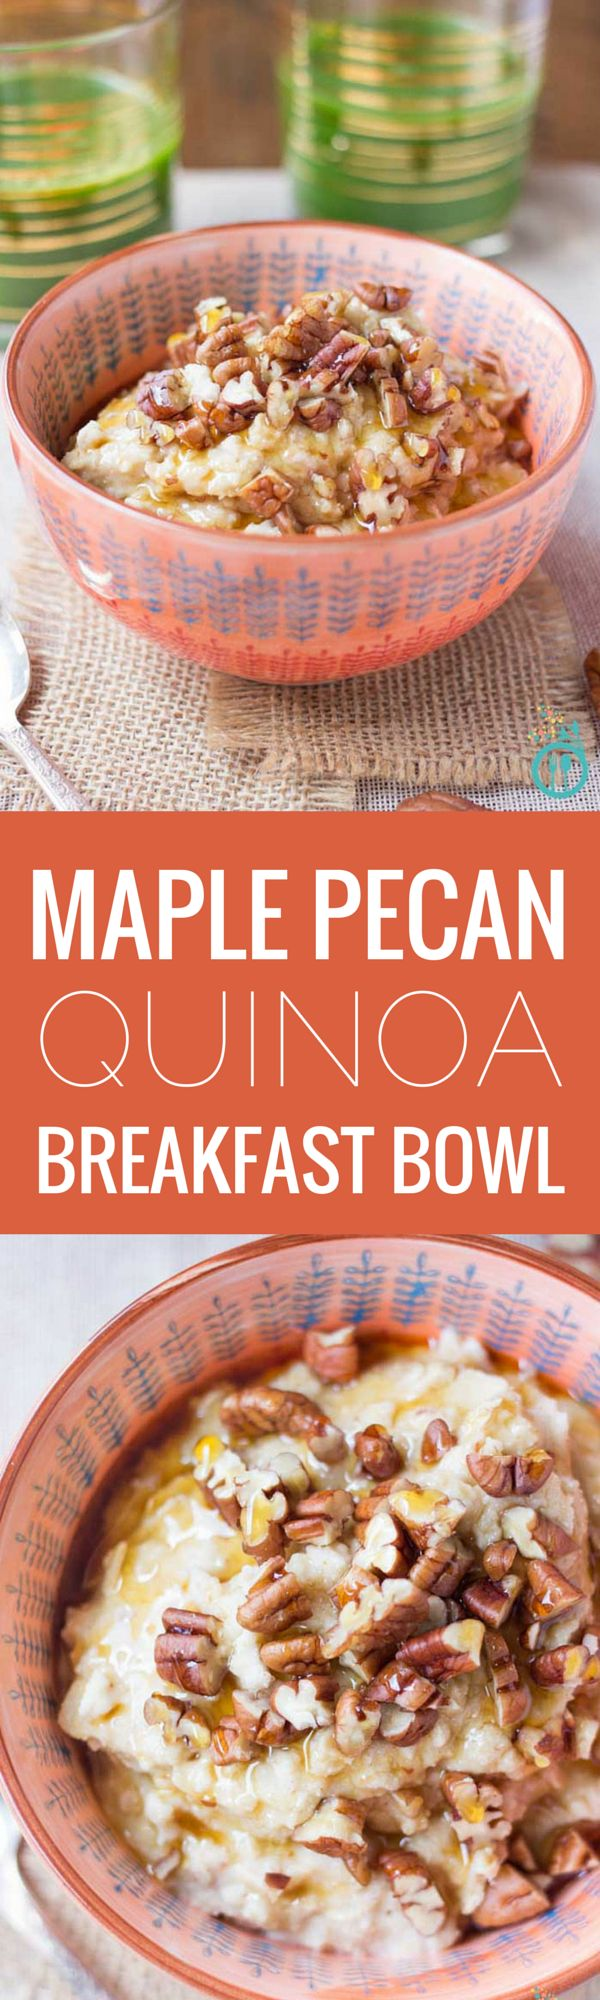 A simple quinoa breakfast bowl that's packed with fiber and protein for lasting energy, but that tastes just like an ooey-gooey cinnamon roll!